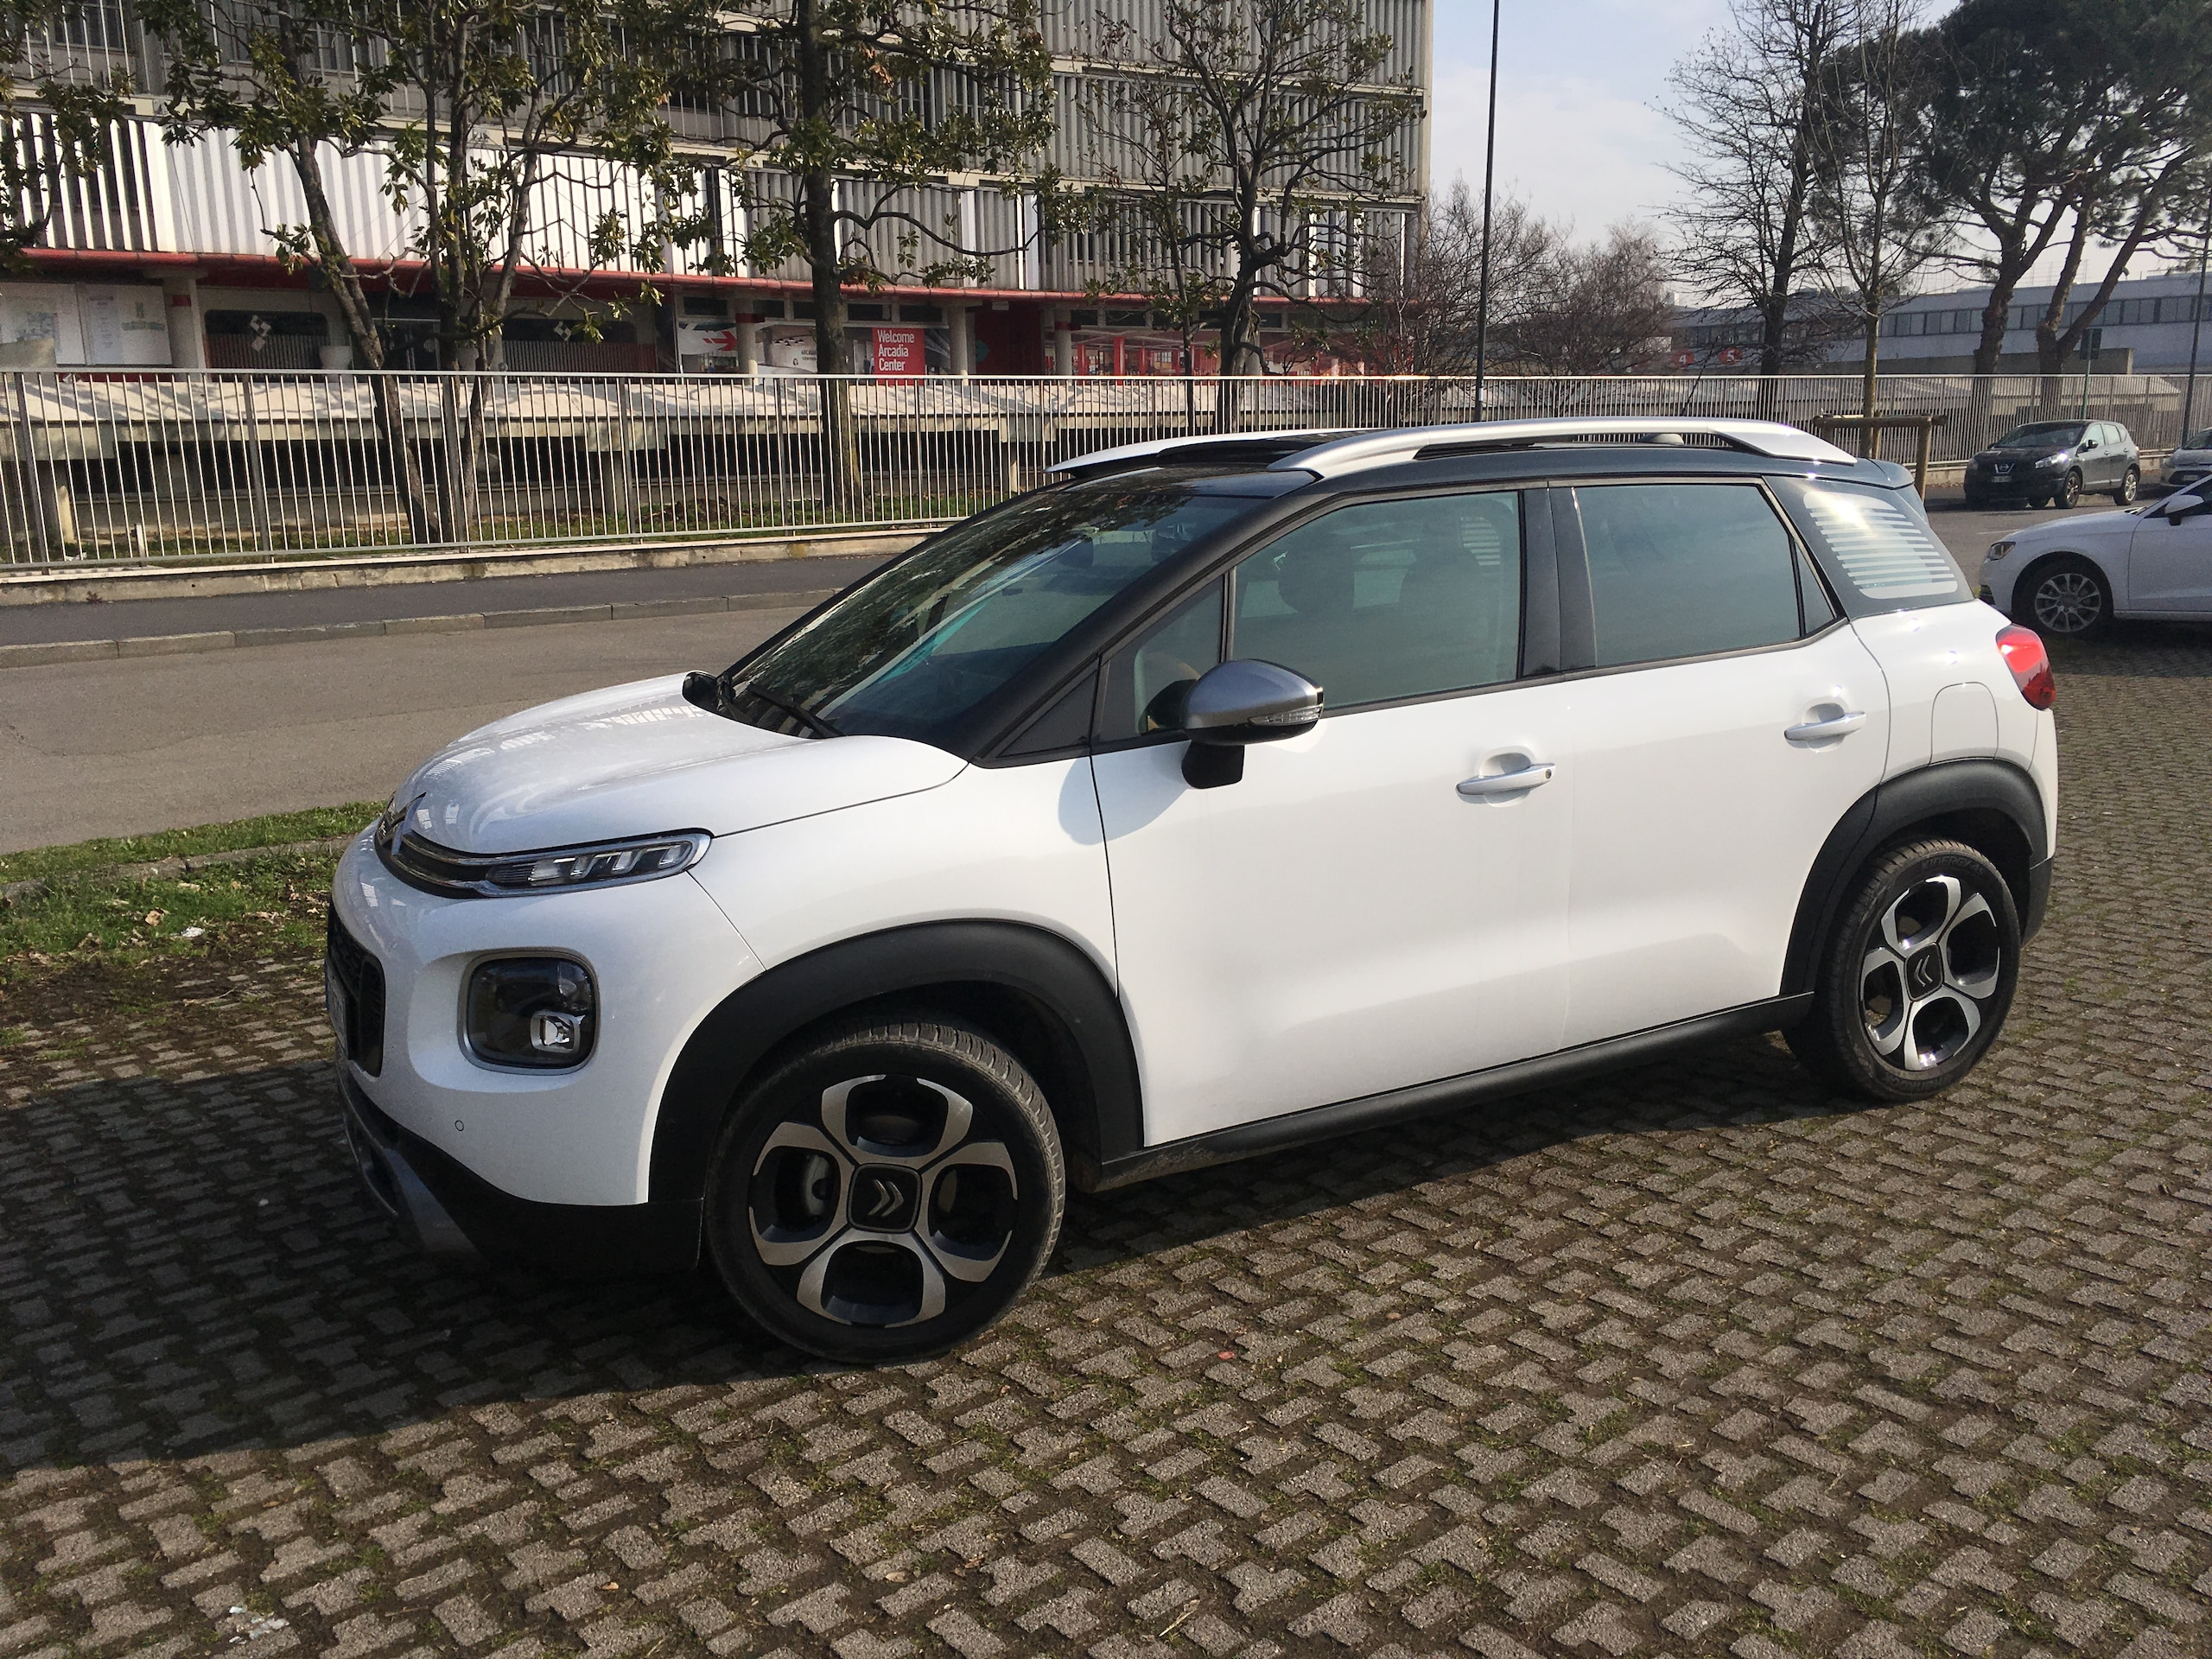 Prova comparata: Citroen C3 Aircross vs Ford Ecosport